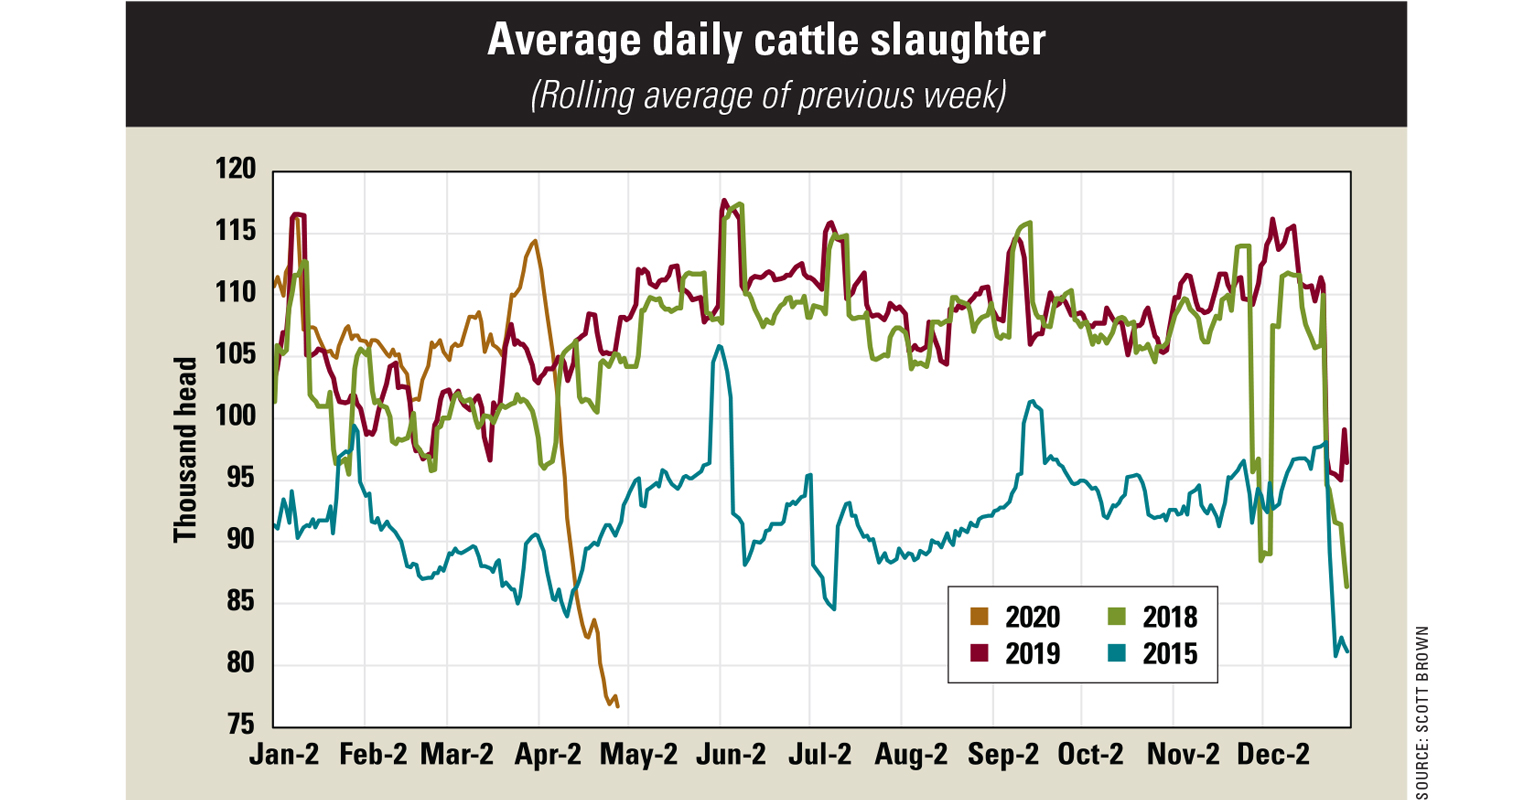 Graph showing the average daily cattle slaughter